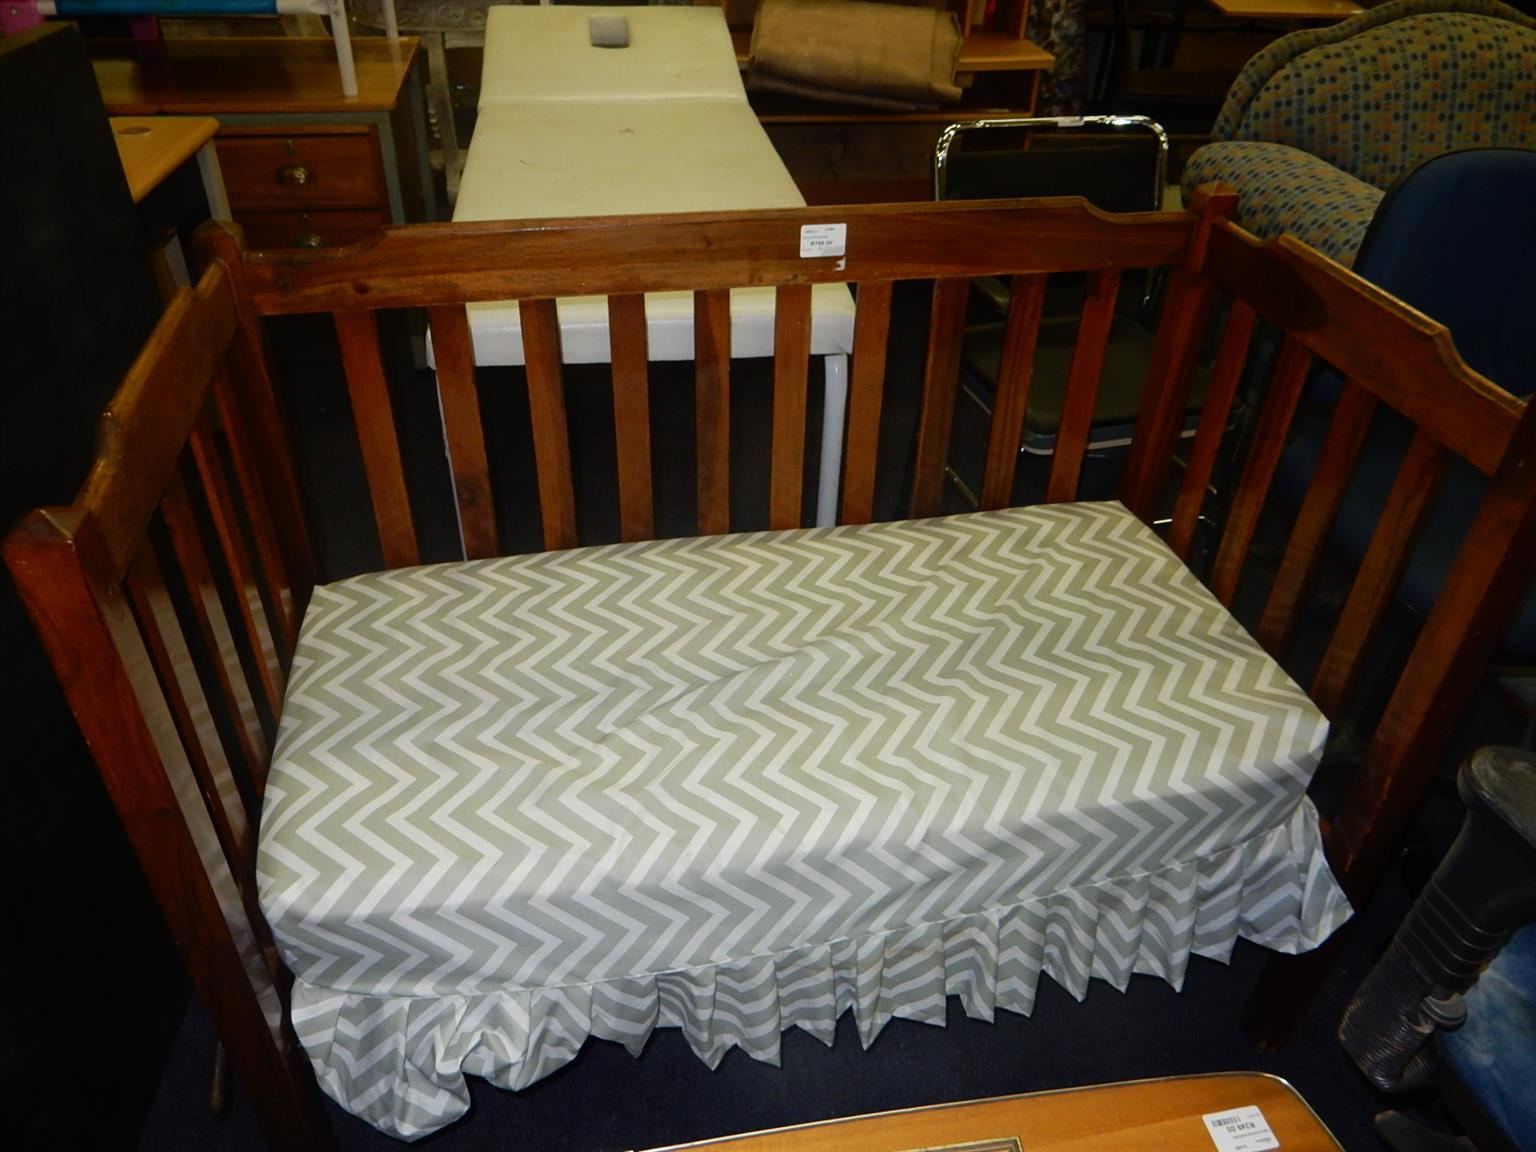 Wooden Couch / Cot